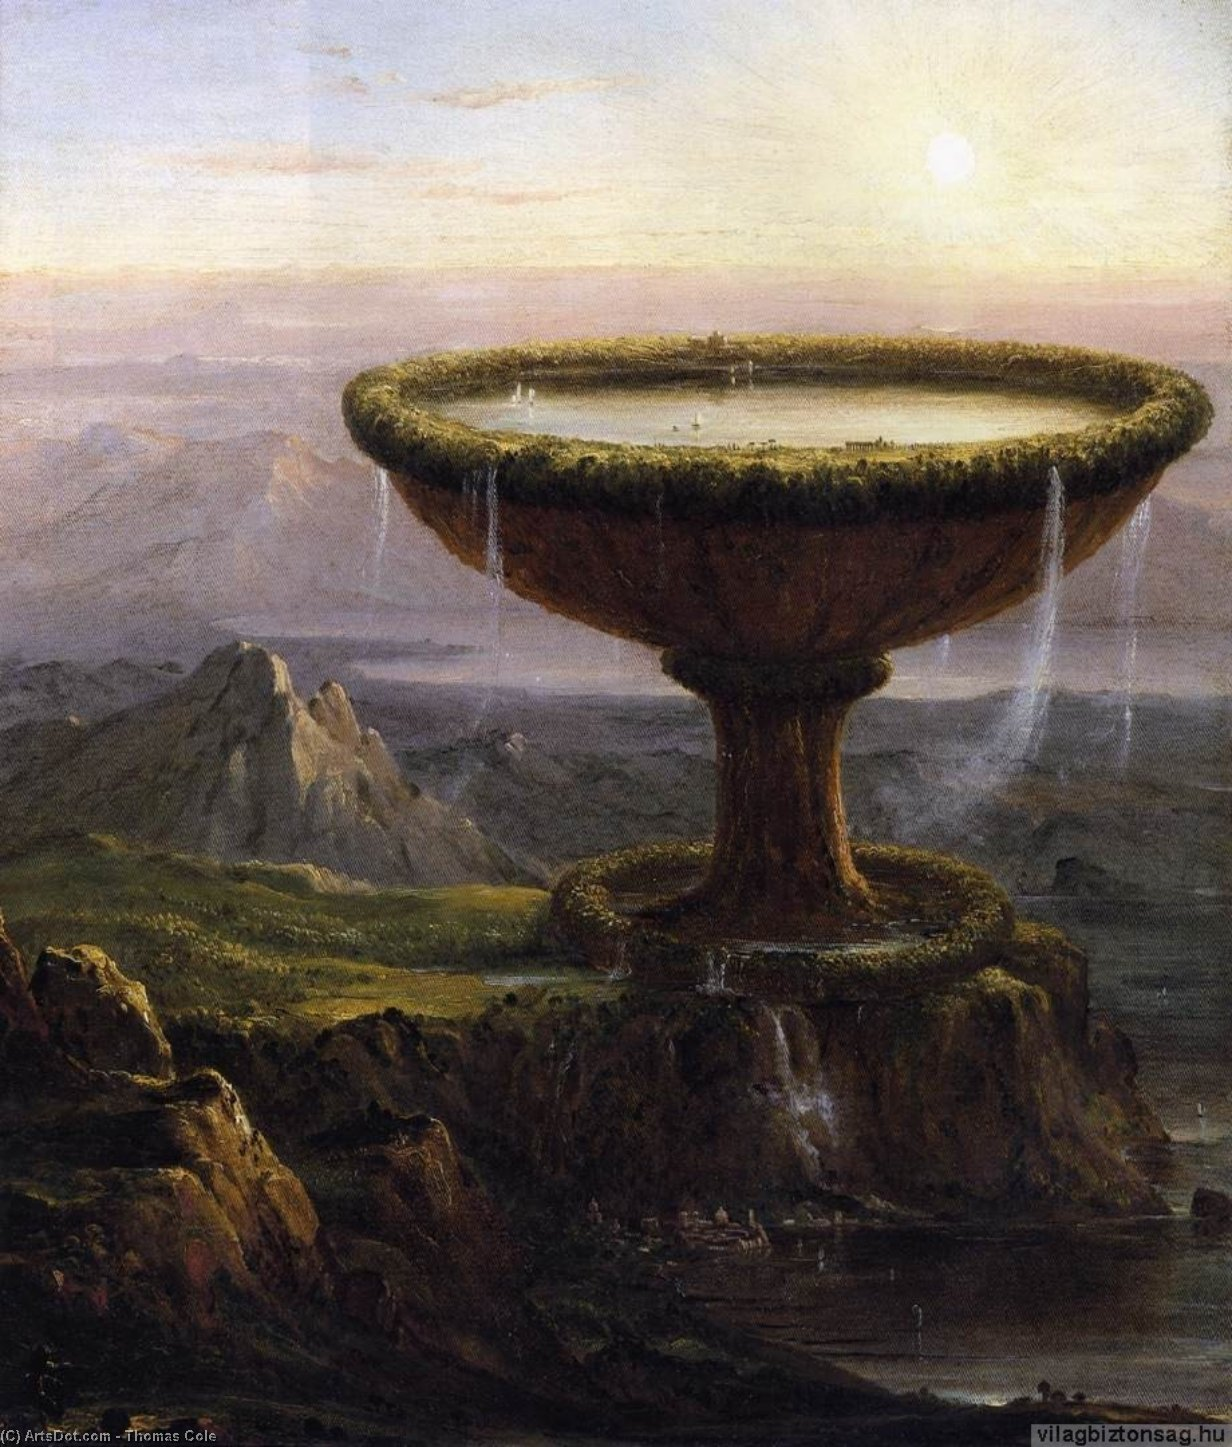 The Titan's Goblet, Oil On Canvas by Thomas Cole (1801-1848, United Kingdom)